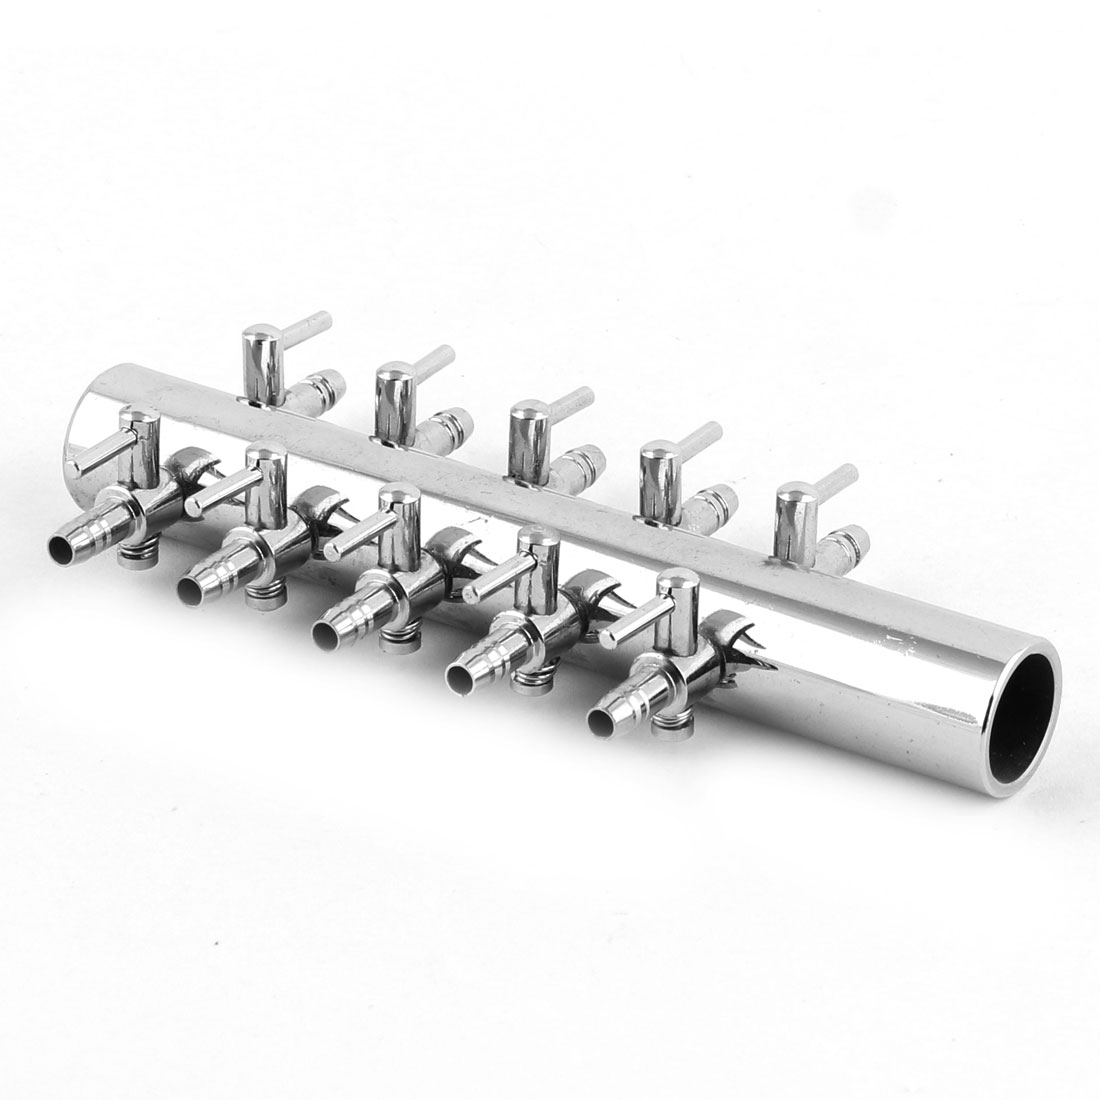 Stainless Steel 10 Way Outlet Water Air Flow Control Valve for Aquarium Fish Tank